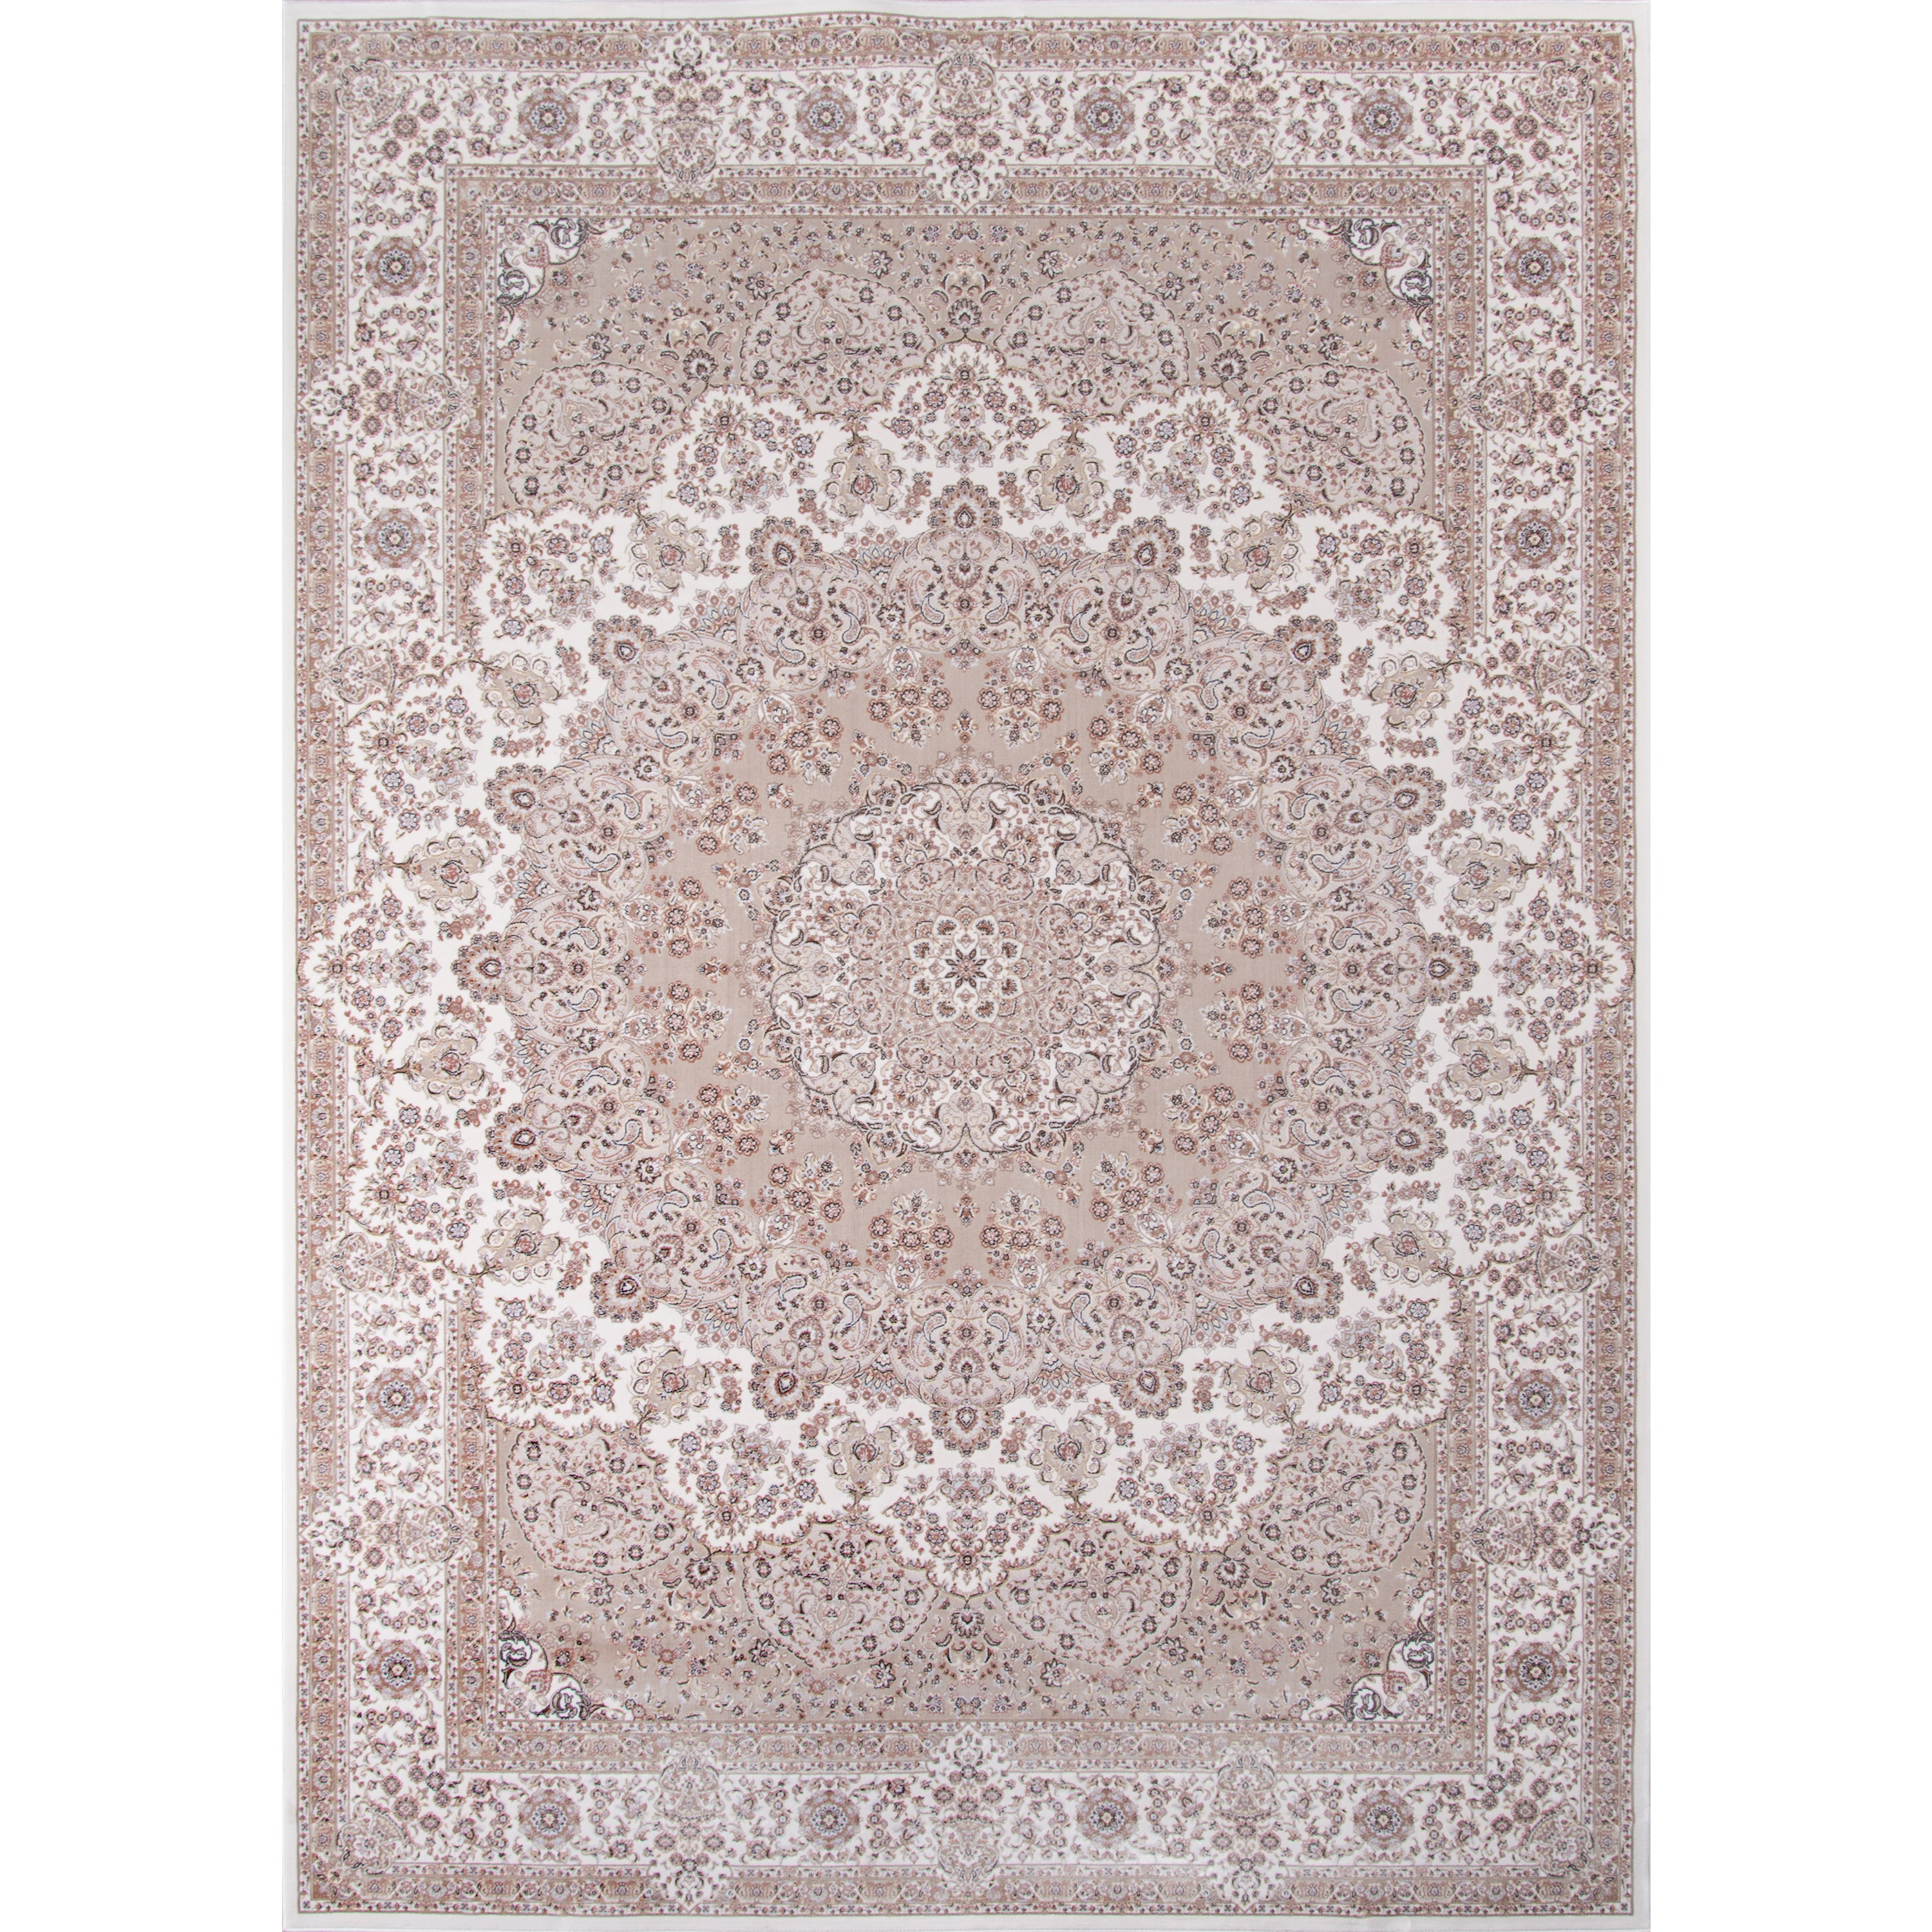 Momeni Antiquity Scallop Medallion Medallion Ivory Fine Area Rug (6'7 x 9'10) by Overstock